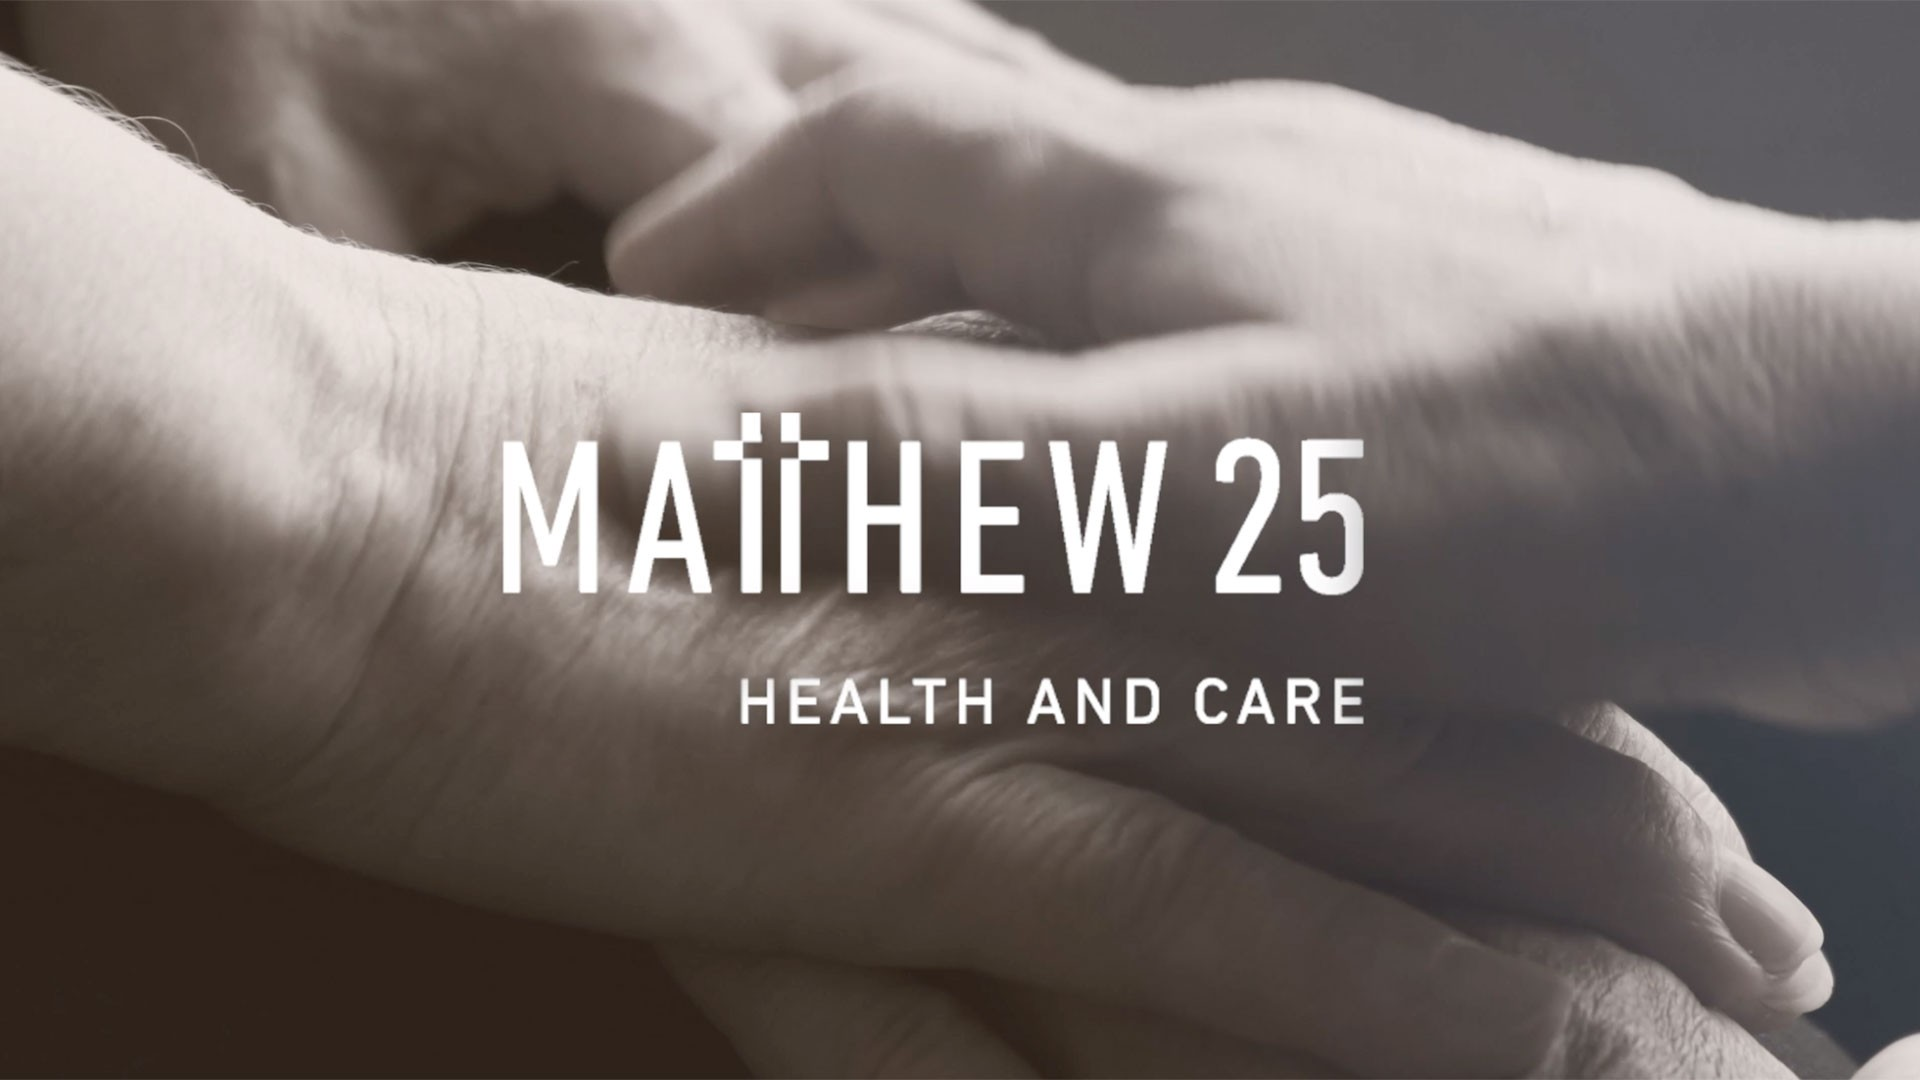 Matthew 25 Health and Care